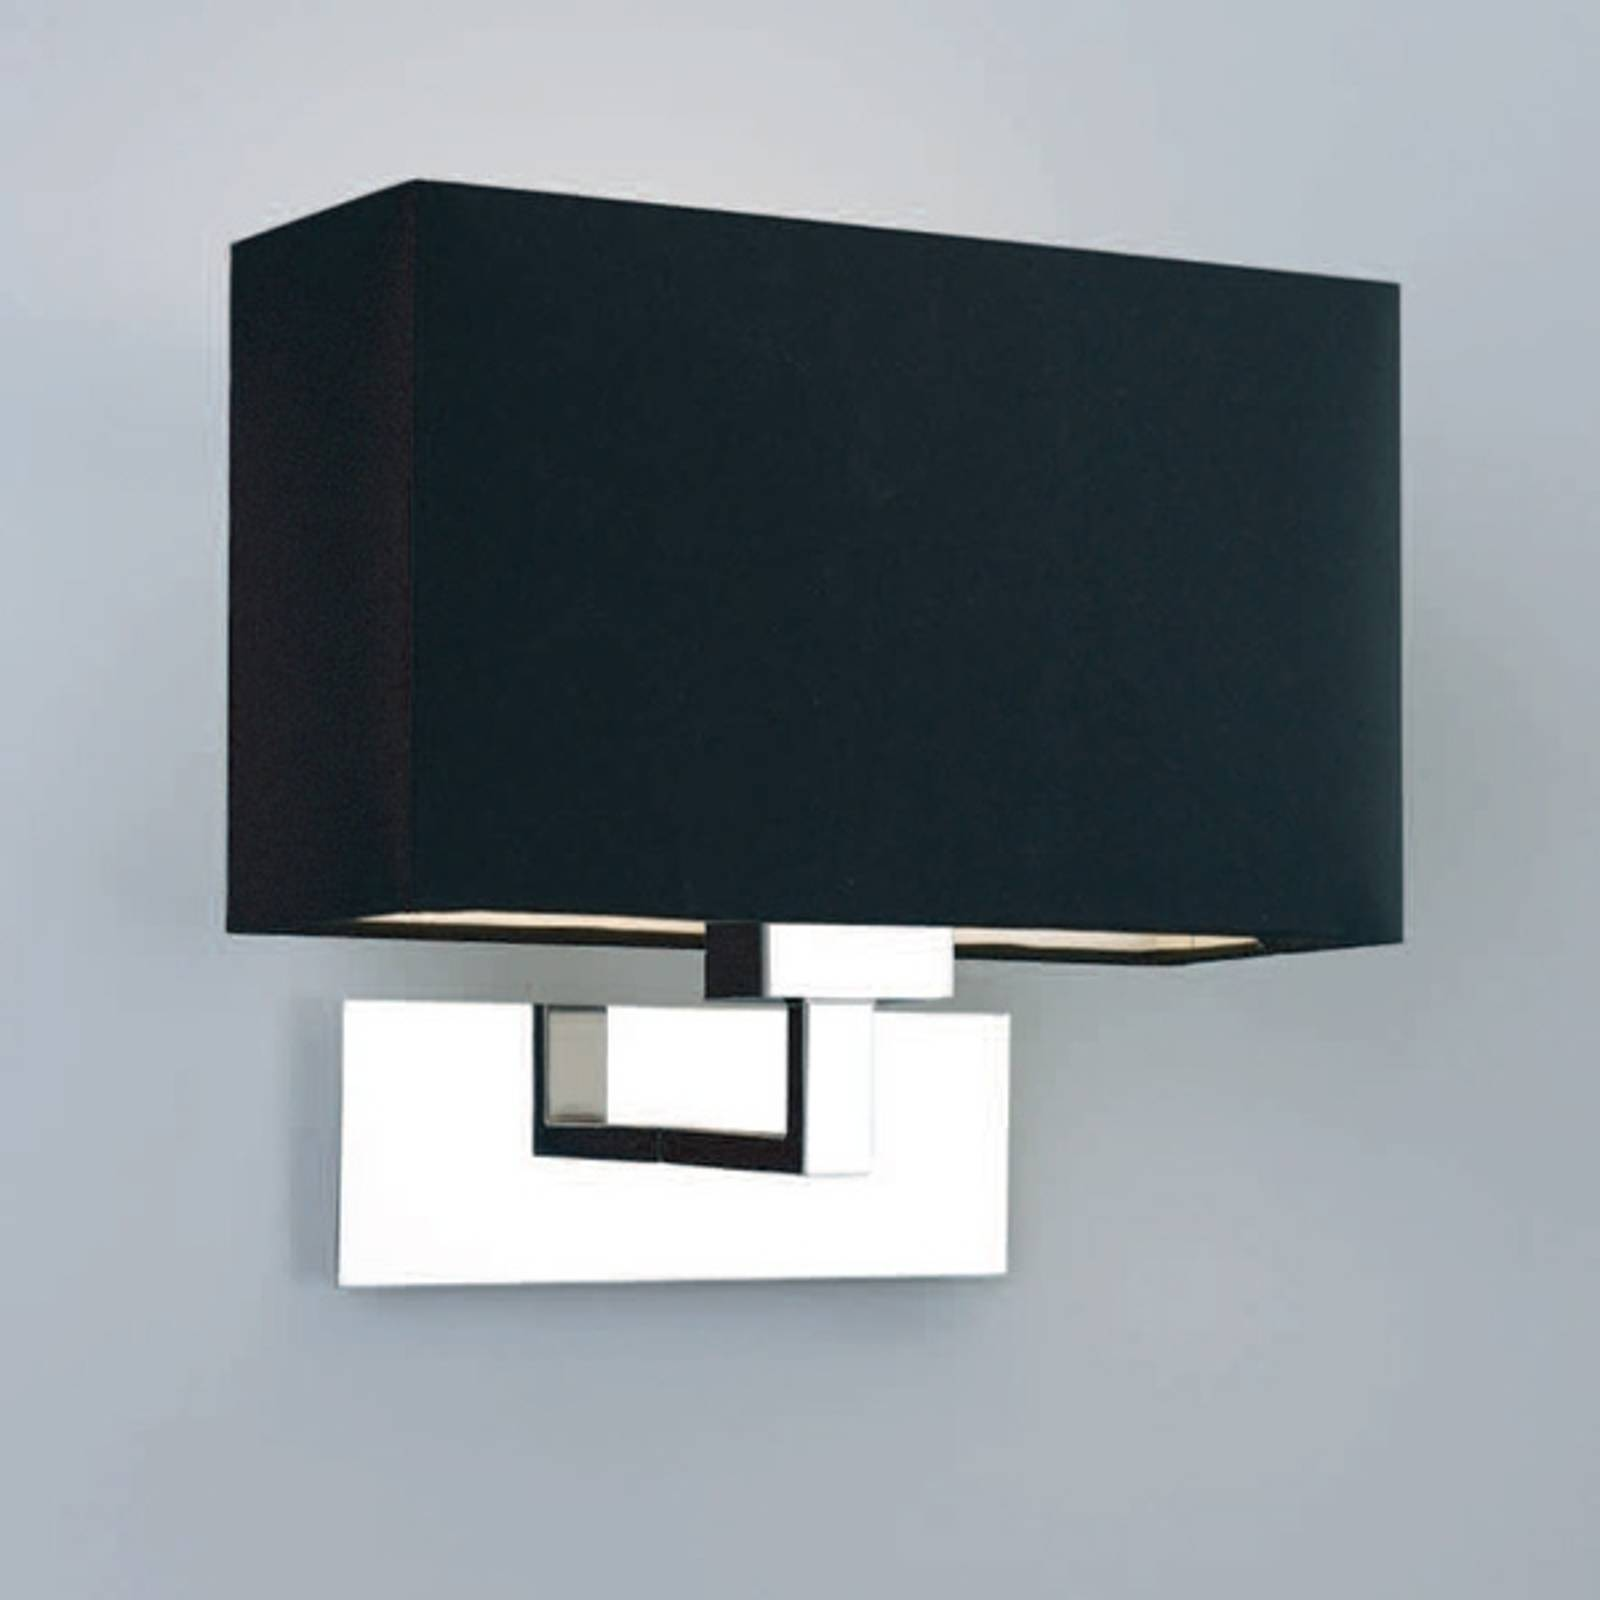 Park Lane Grande Wall Light Black from ASTRO